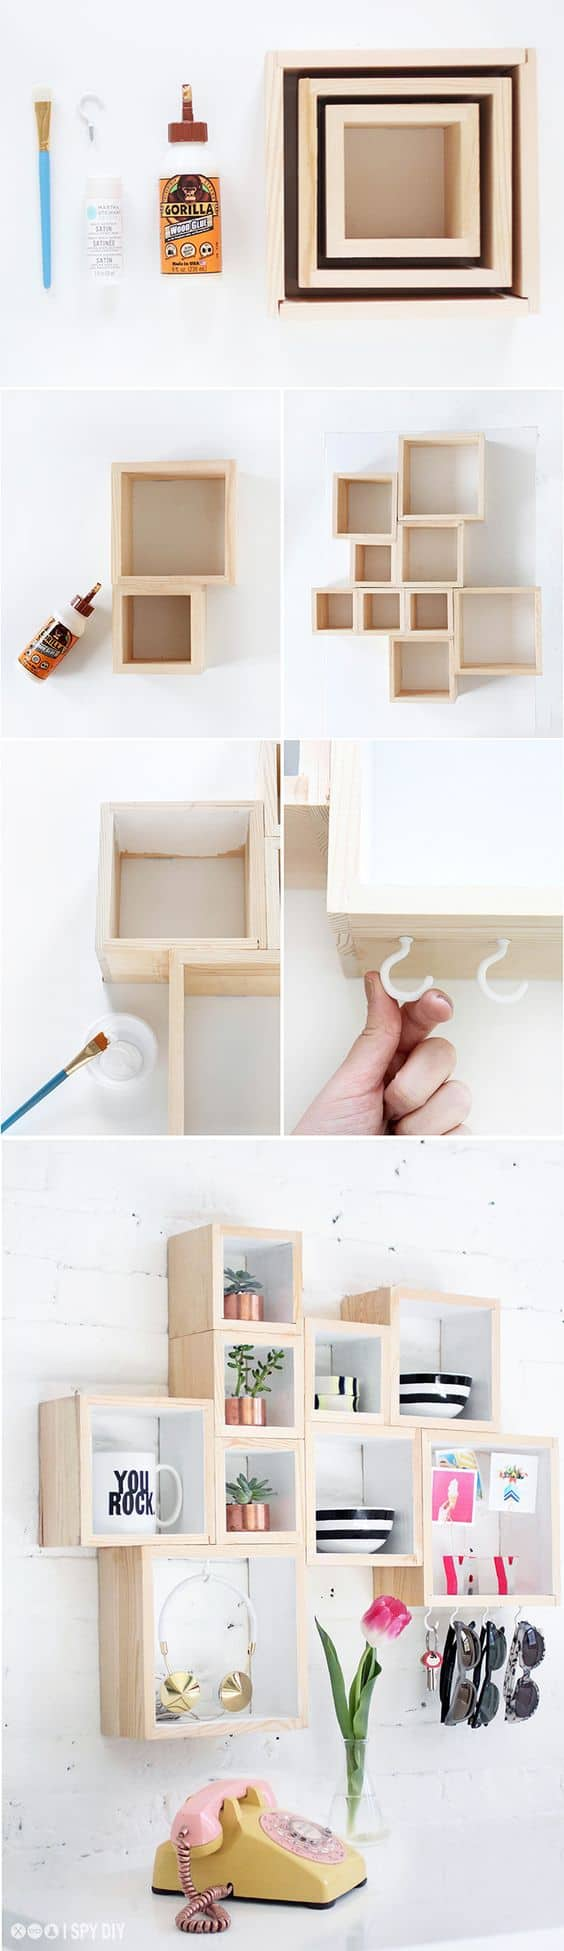 19 beautiful easy diy shelves to build at home homesthetics e0b66f35ca558f5ddff28602b2441782 e0b66f35ca558f5ddff28602b2441782 amipublicfo Image collections